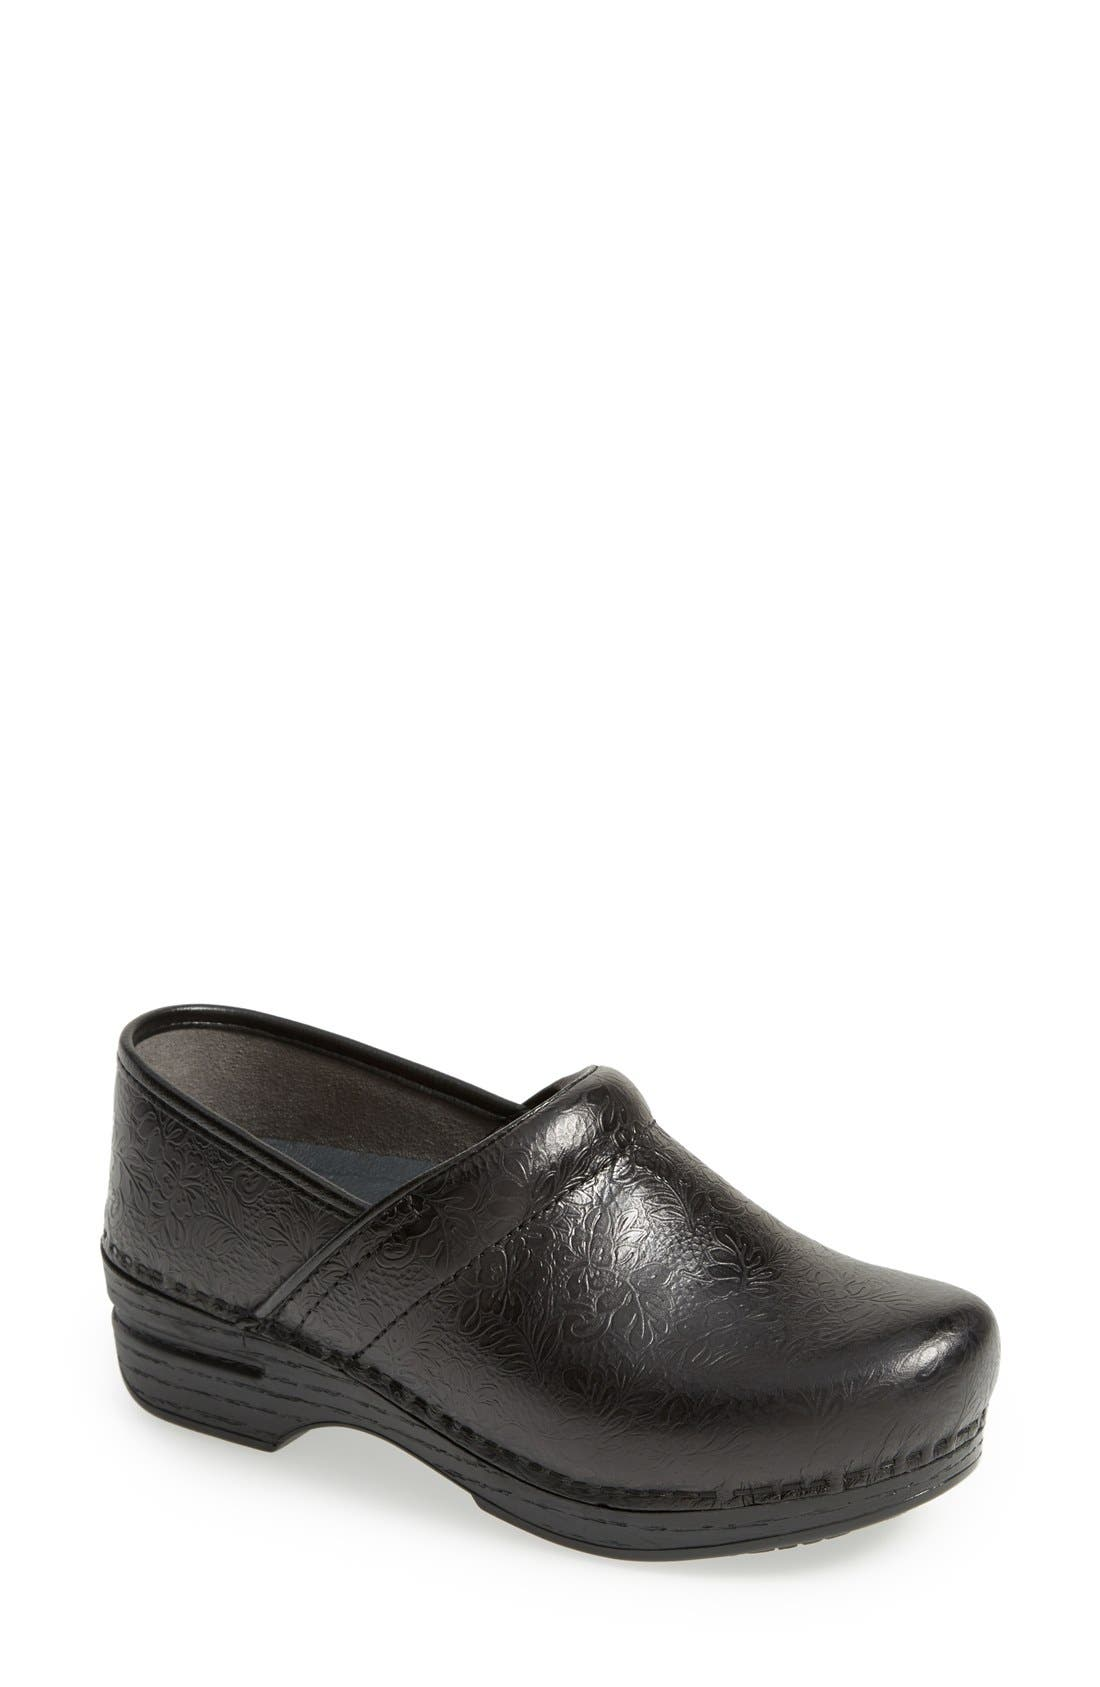 Alternate Image 1 Selected - Dansko 'Pro XP' Clog (Women)